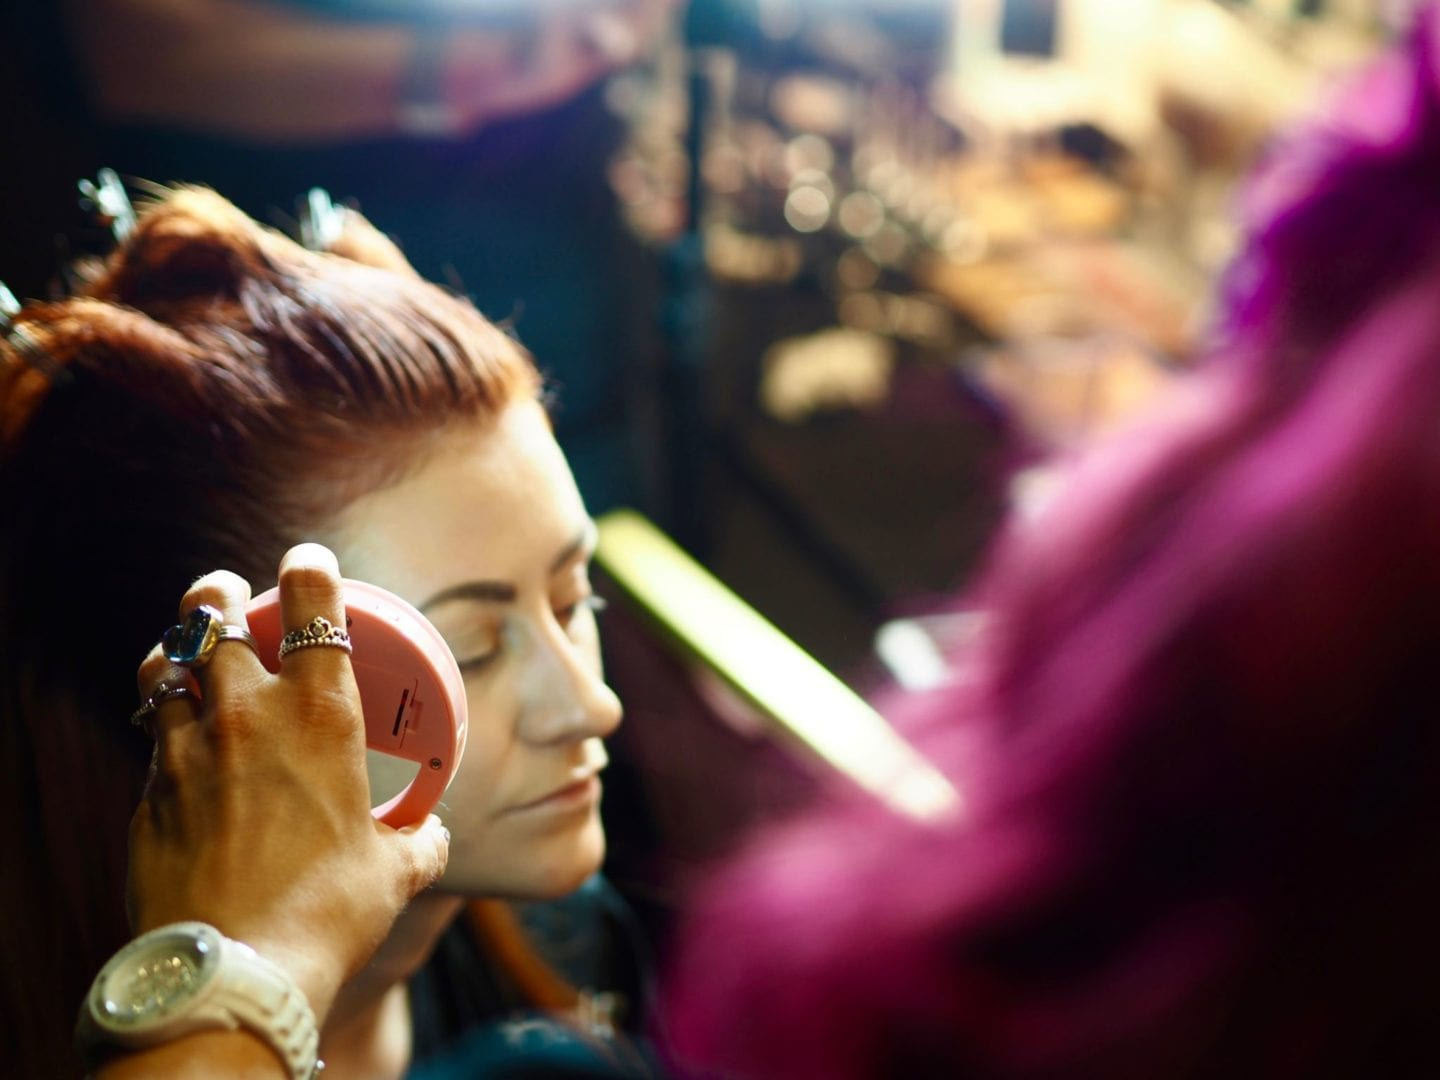 Backstage-at-LFW-With-Hellavagirl-X-Benefit-Cosmetics-lisa-benefit